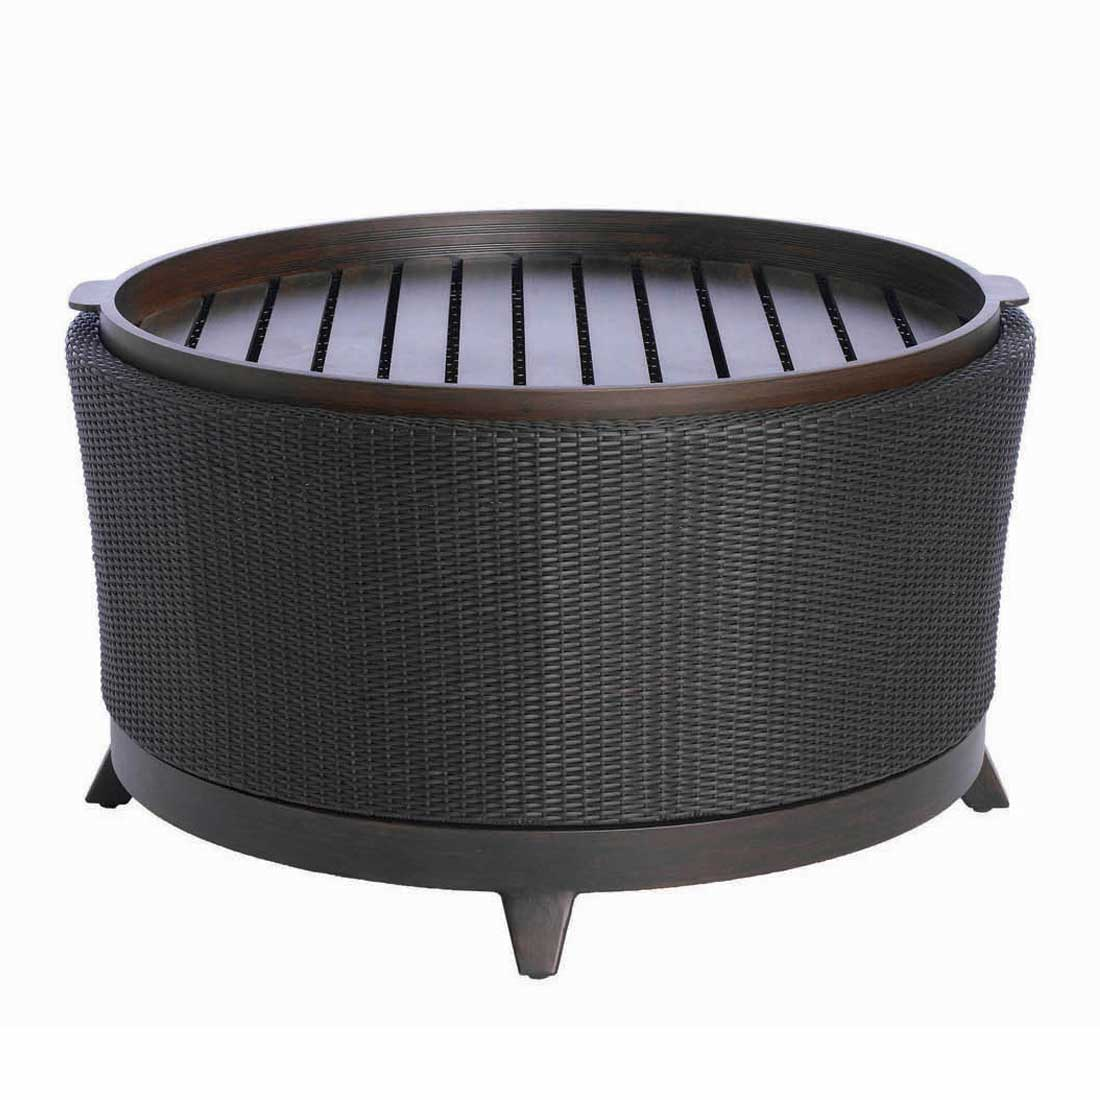 Halo Outdoor Round Coffee Table